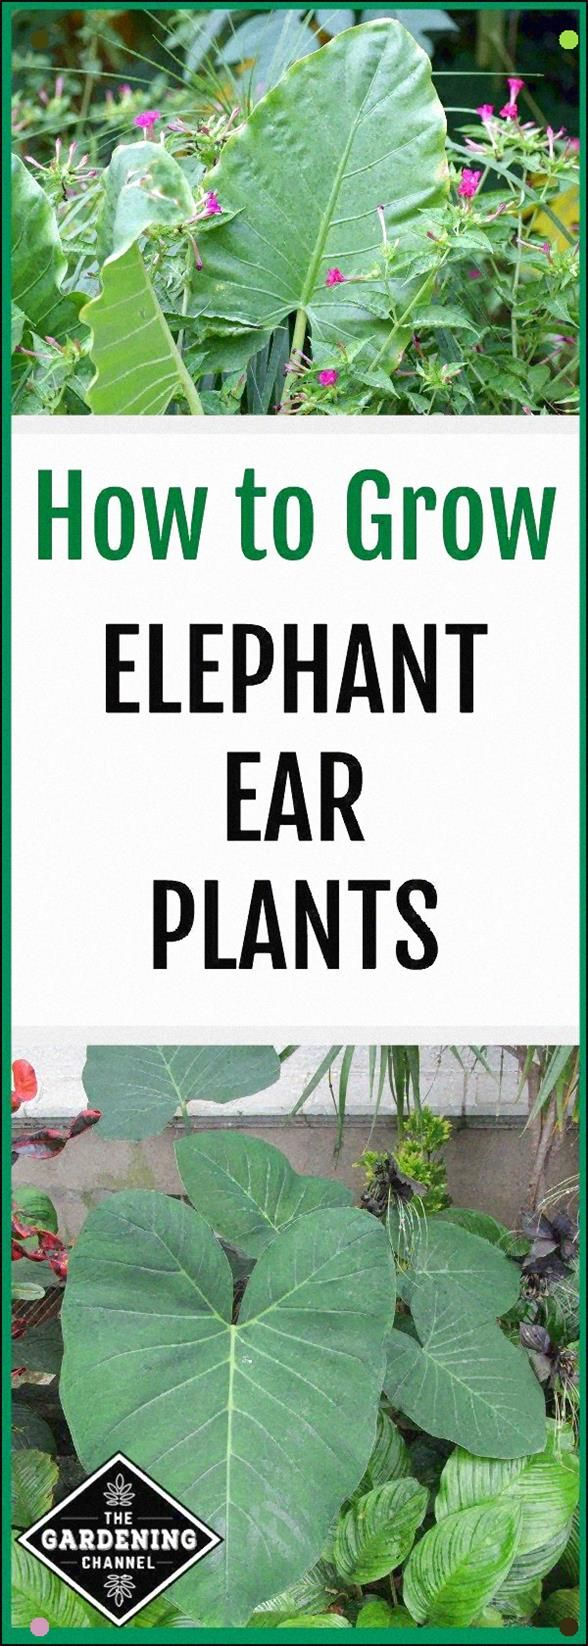 Elephant Ear Plants, Taro, Are Tropical Plants That Like Warm, Moist Conditions. It very well may Be Grown Year-Round In Southern Climates And Indoors As A Houseplant In The Winter In Northern Areas. #elephantearsandtropicals